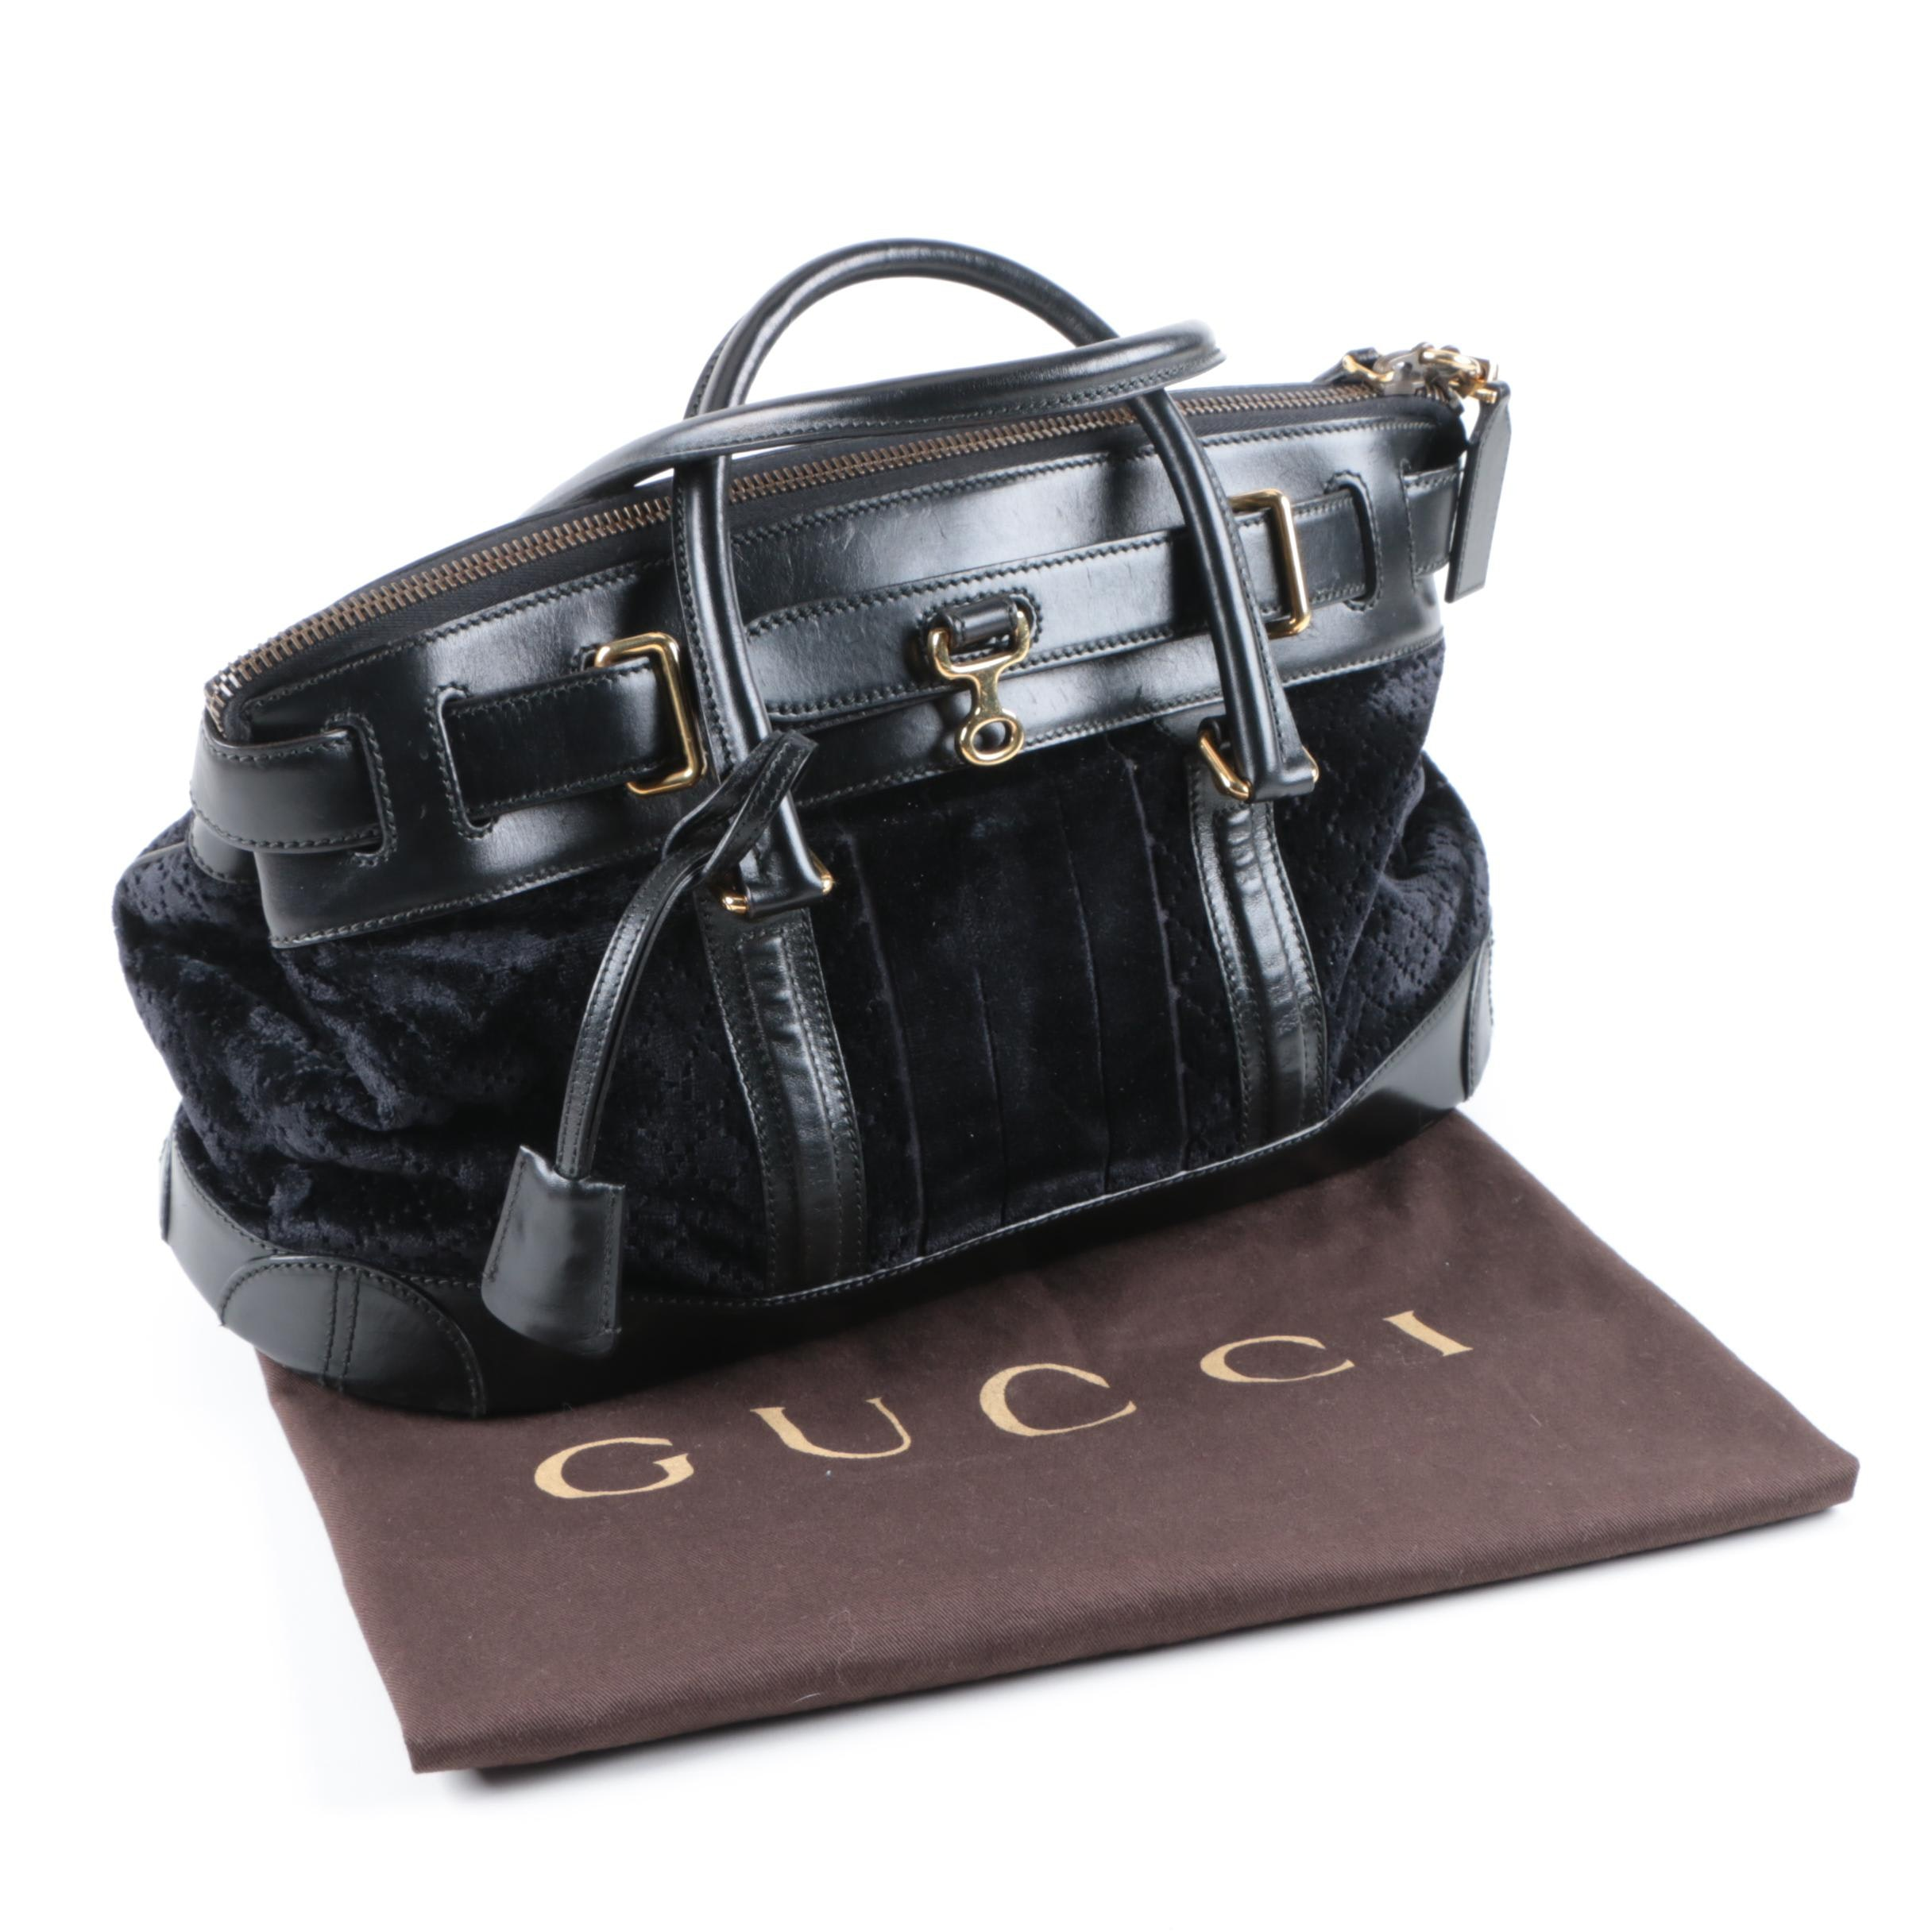 Gucci Secret Leather and Velveteen Top Handle Satchel